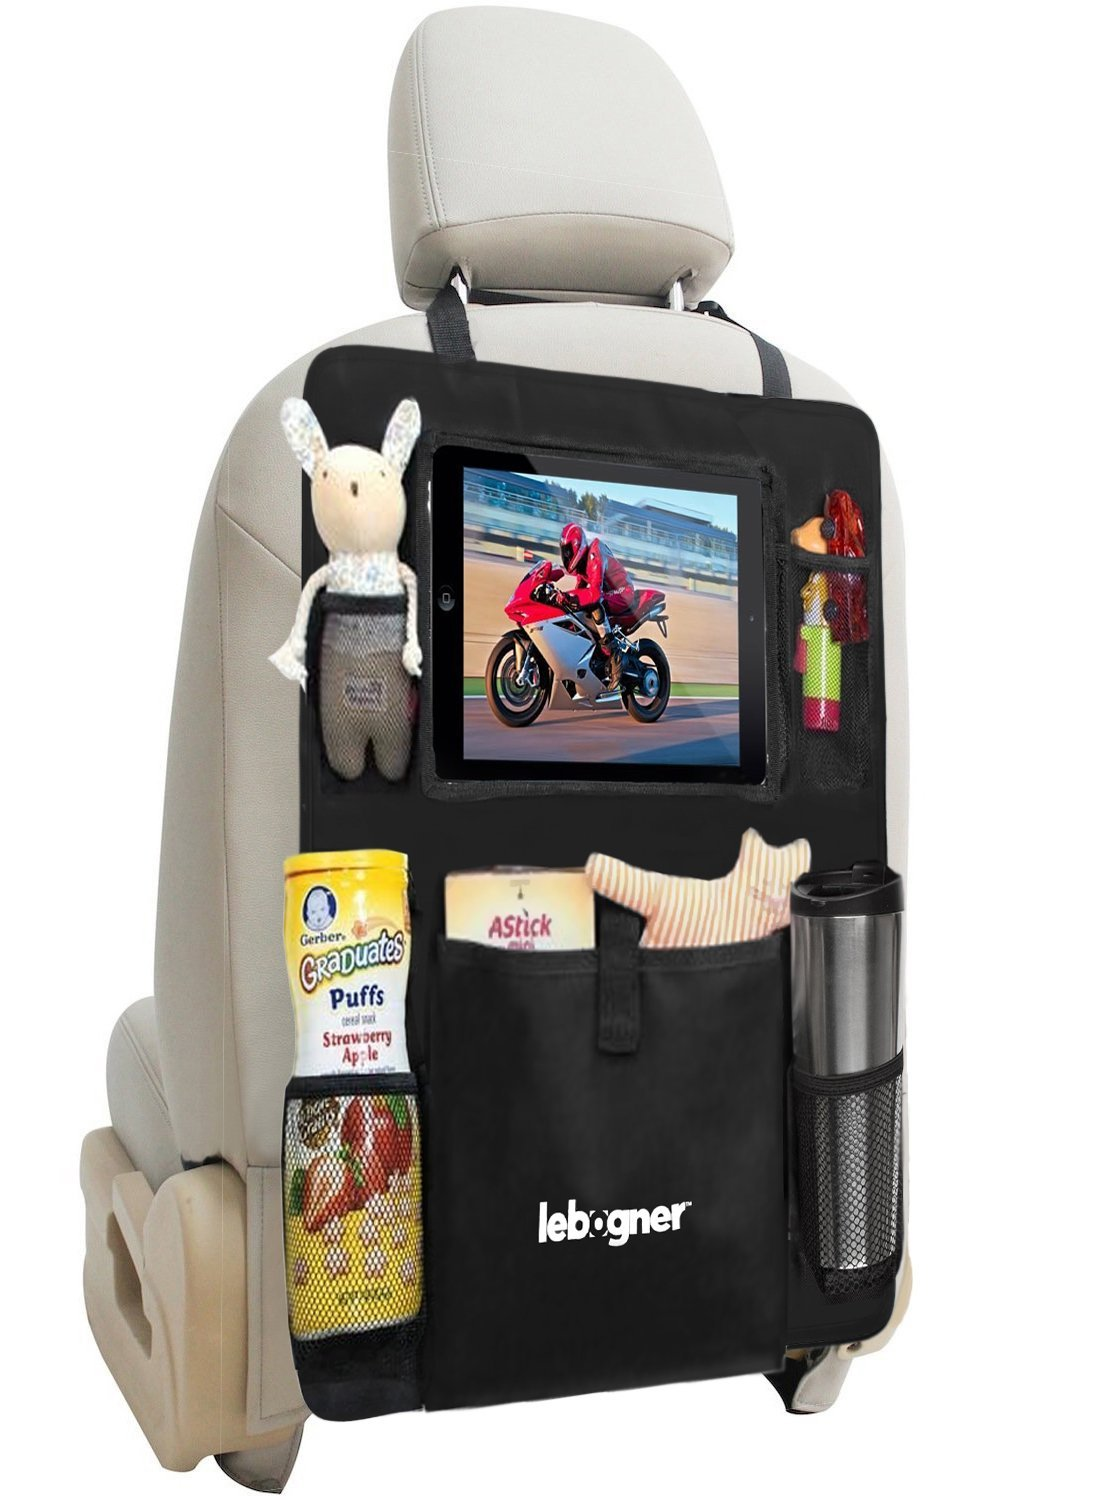 Backseat Organizer + iPad and Tablet Holder By Lebogner, X-Large Multifunctional 5 Pocket Storage Car Seat Back Organizer and Kick Mat Protectors, To Organize All Baby, Kids Travel Accessories LOR-A-1018